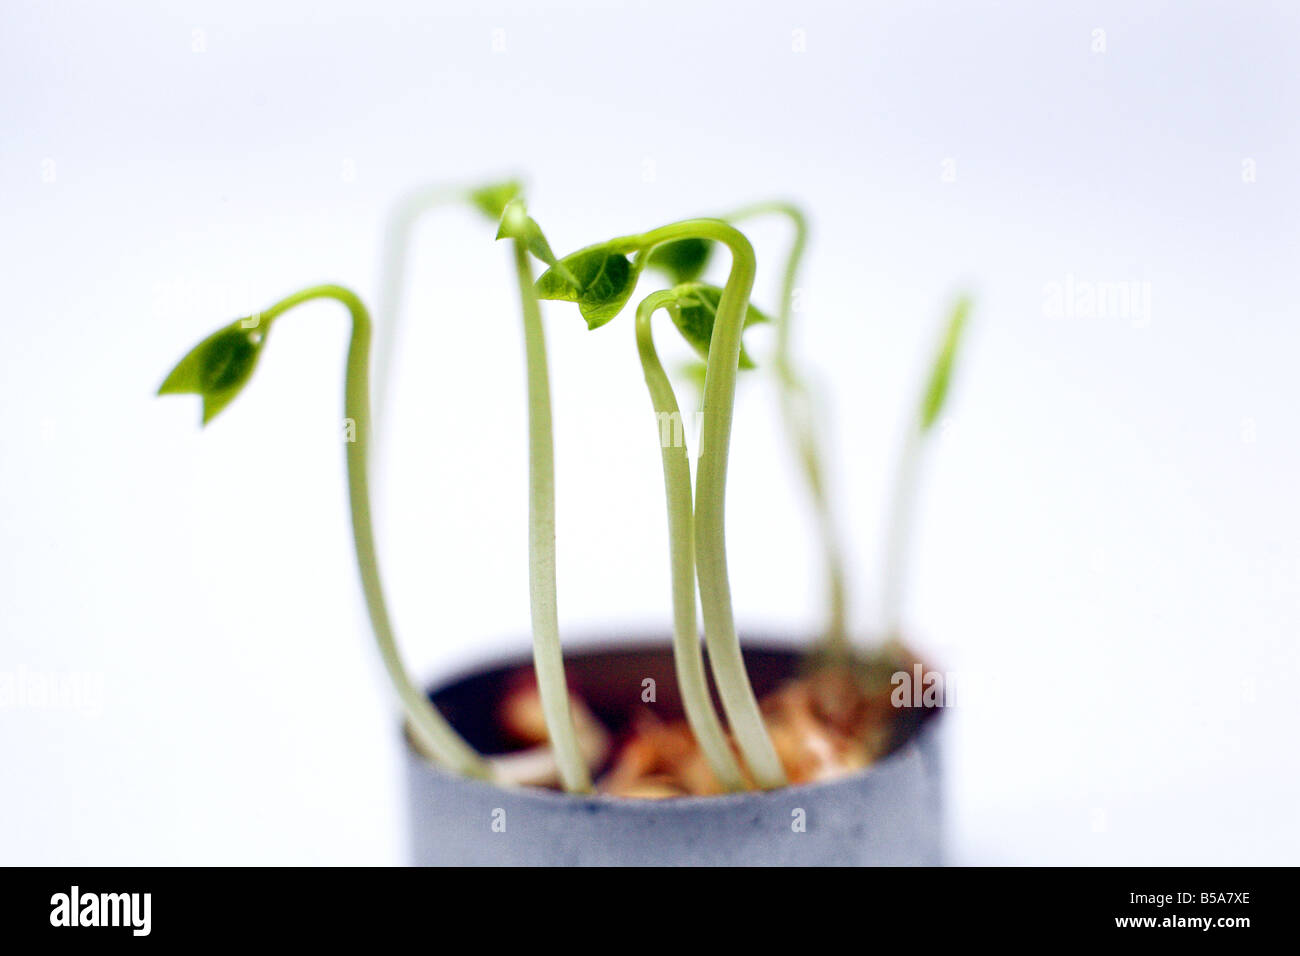 The sprouts. - Stock Image